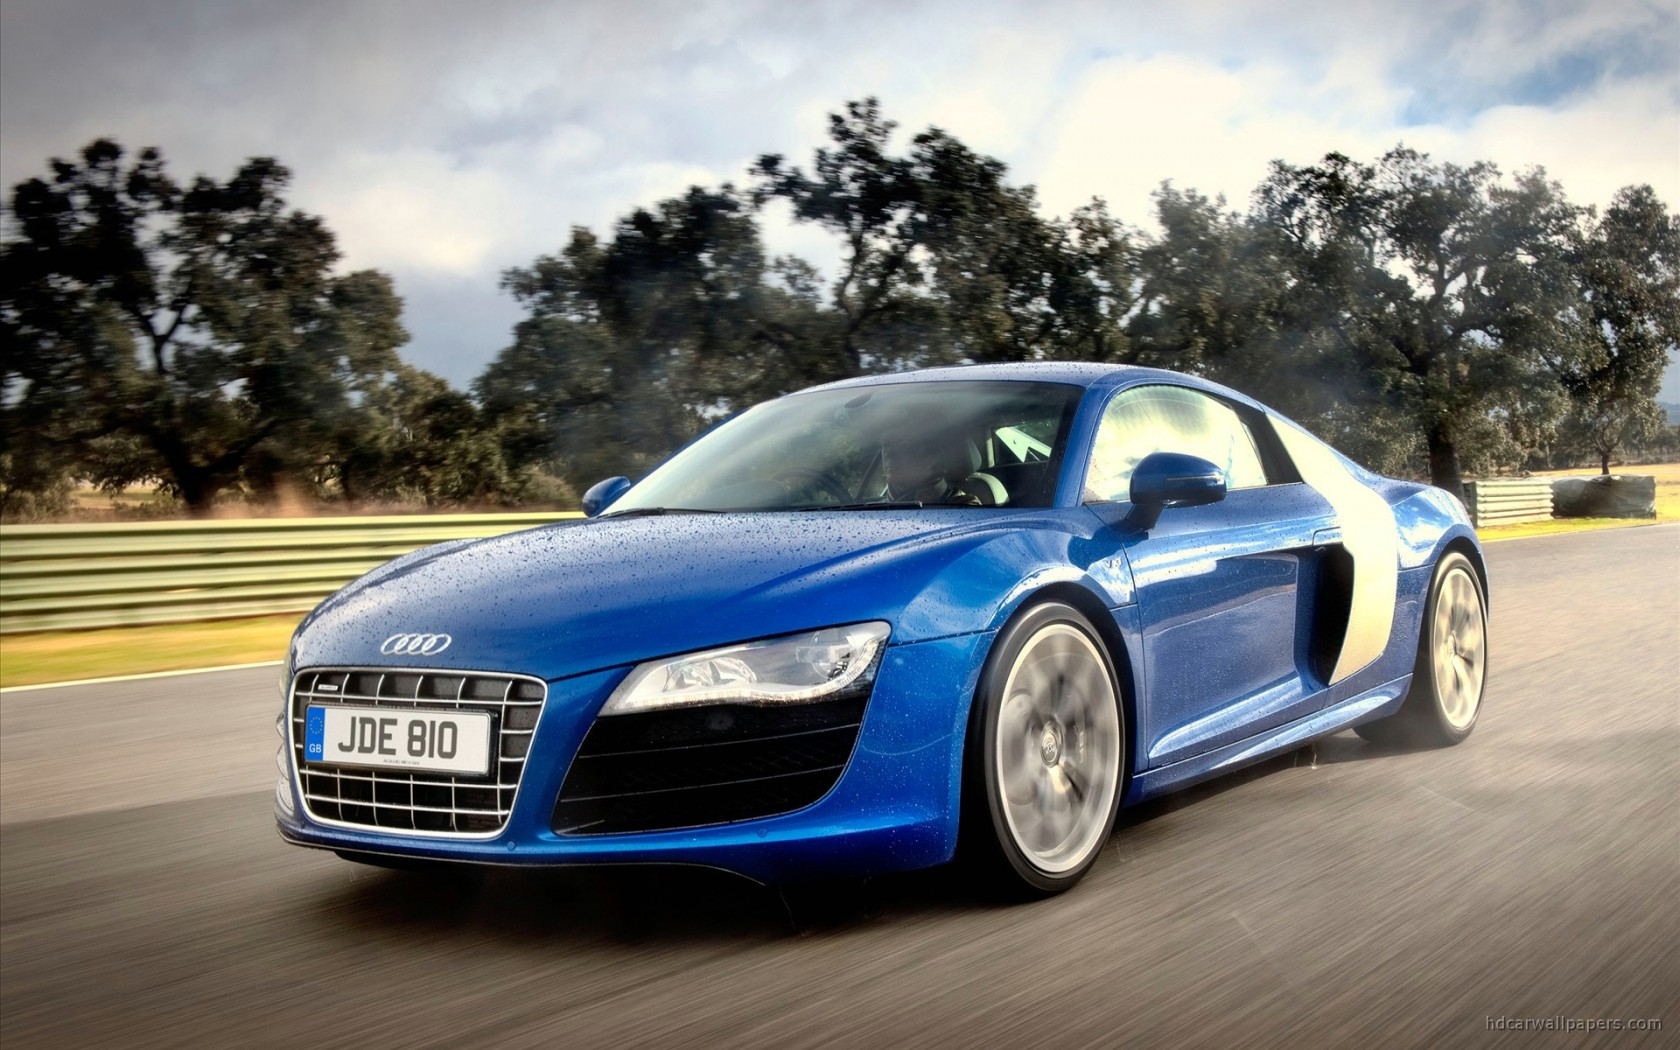 2010 Audi R8 5 2 Fsi Quattro 3 Wallpaper In 1680x1050